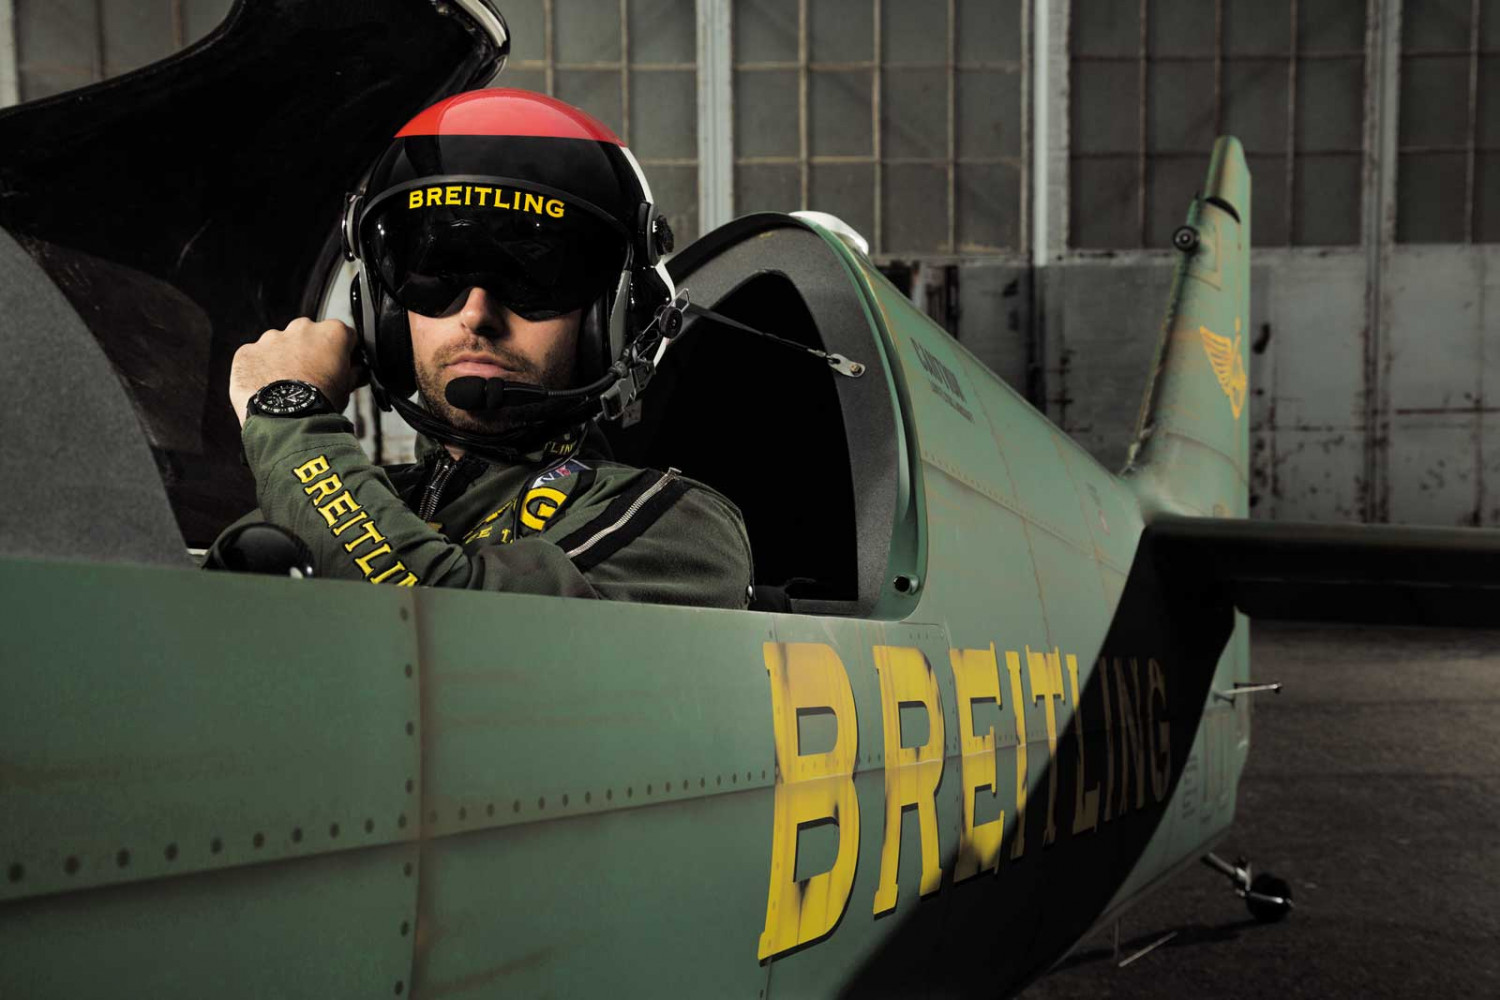 MXS-R Skyracer plane of the Breitling Racing Team flown by aerobatics rising star Mika Brageot